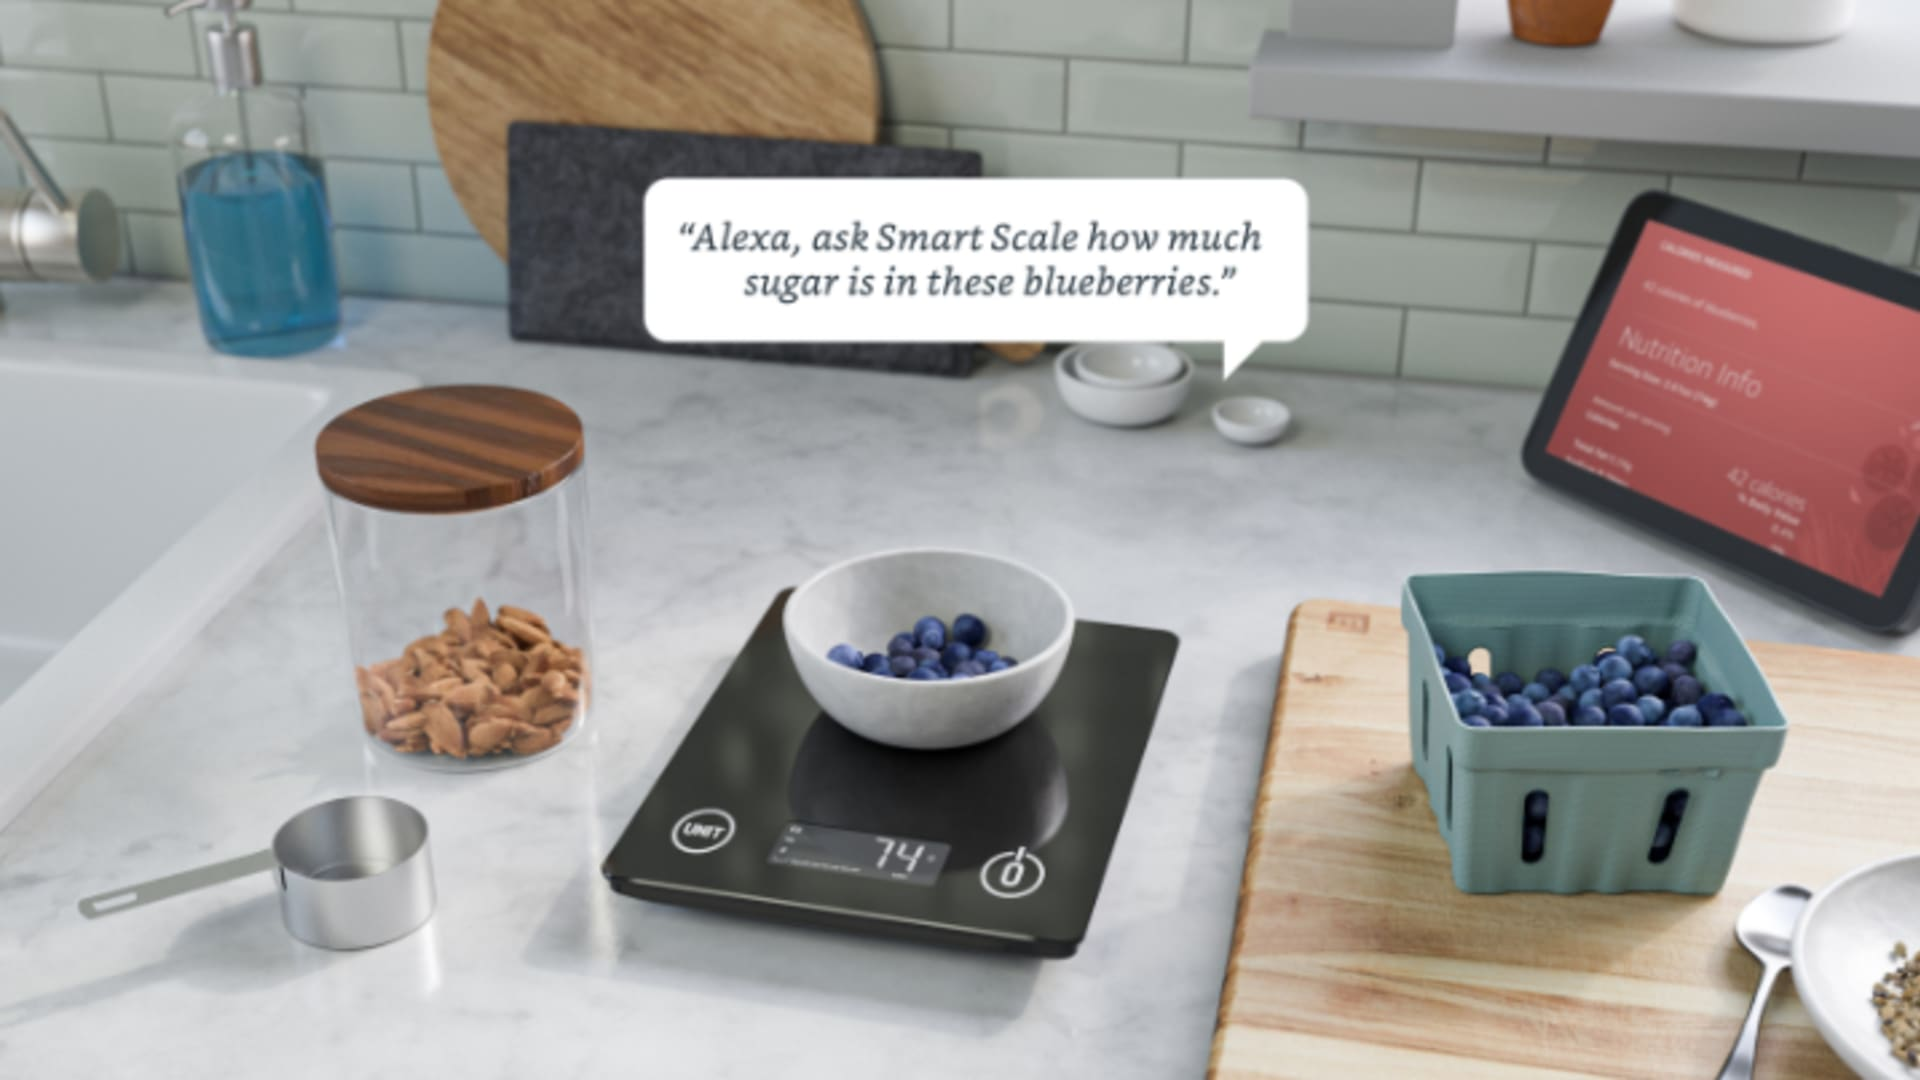 Amazon's smart nutritional scale.